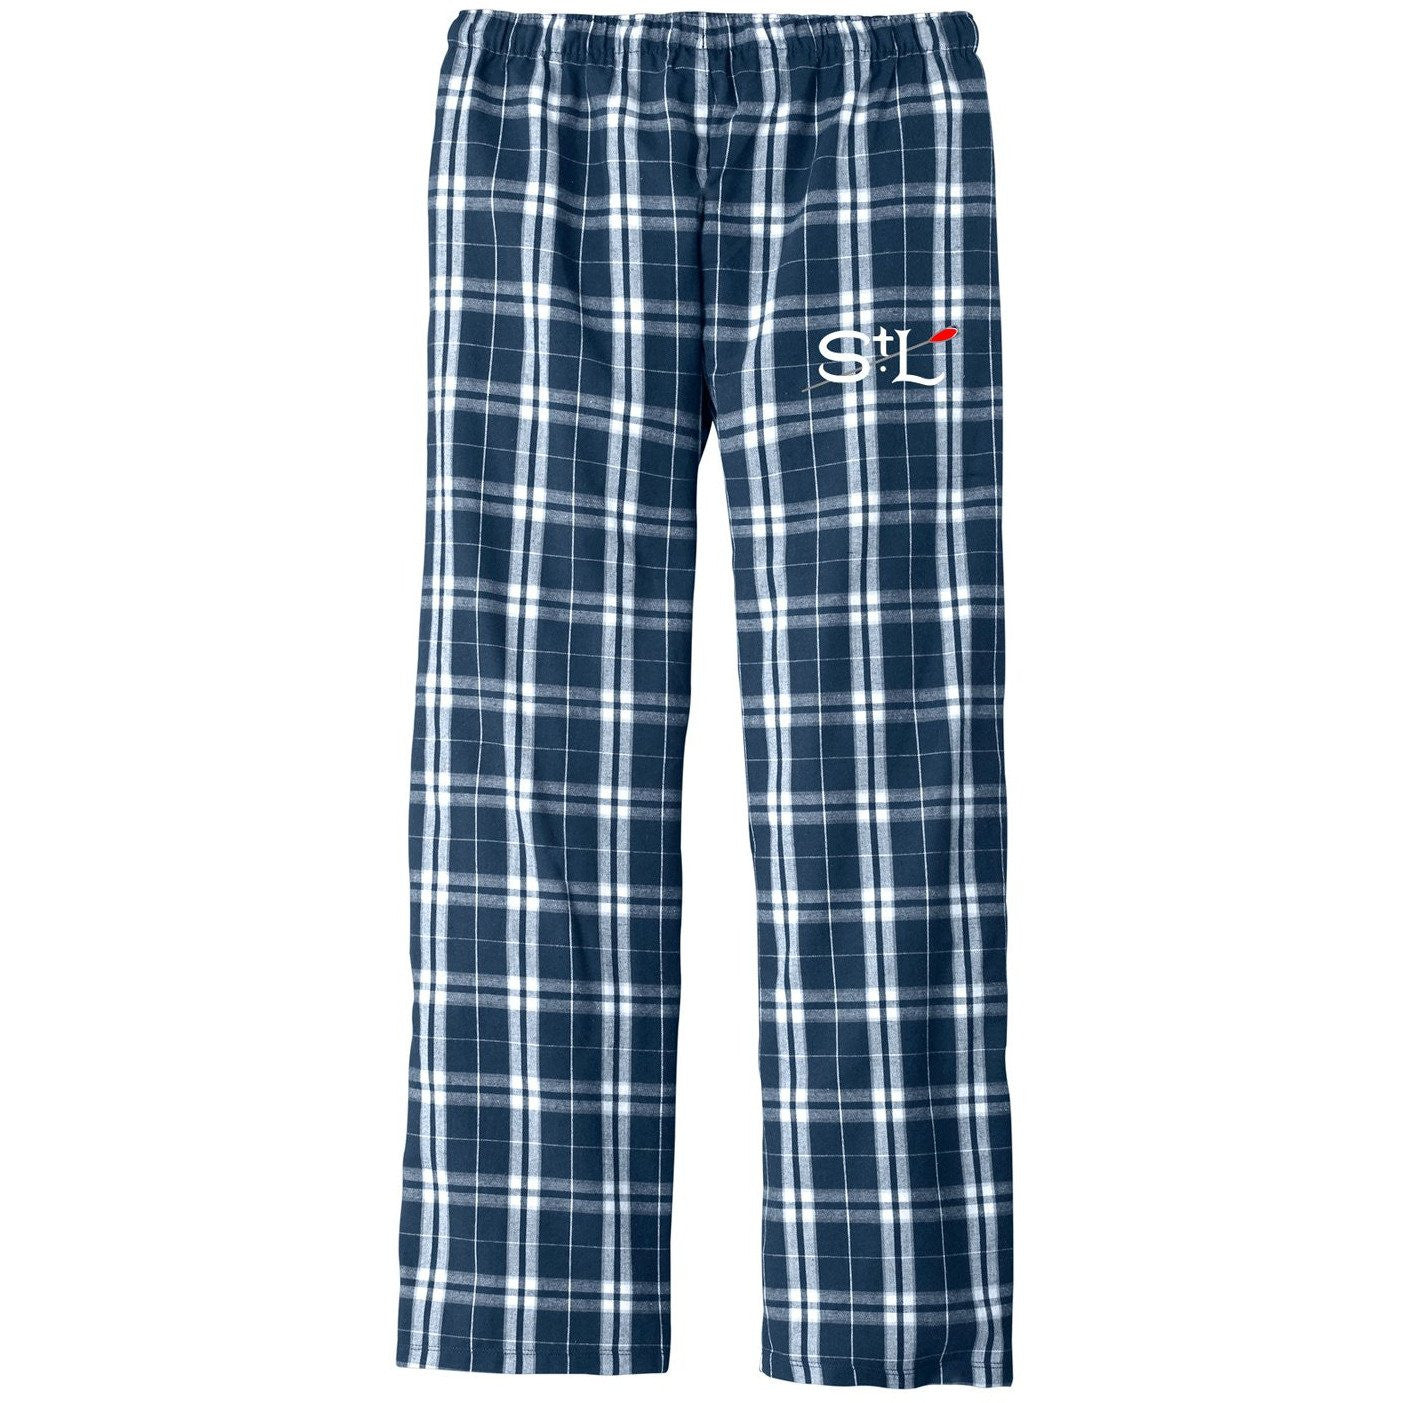 St. Louis Rowing Club Flannel Pants